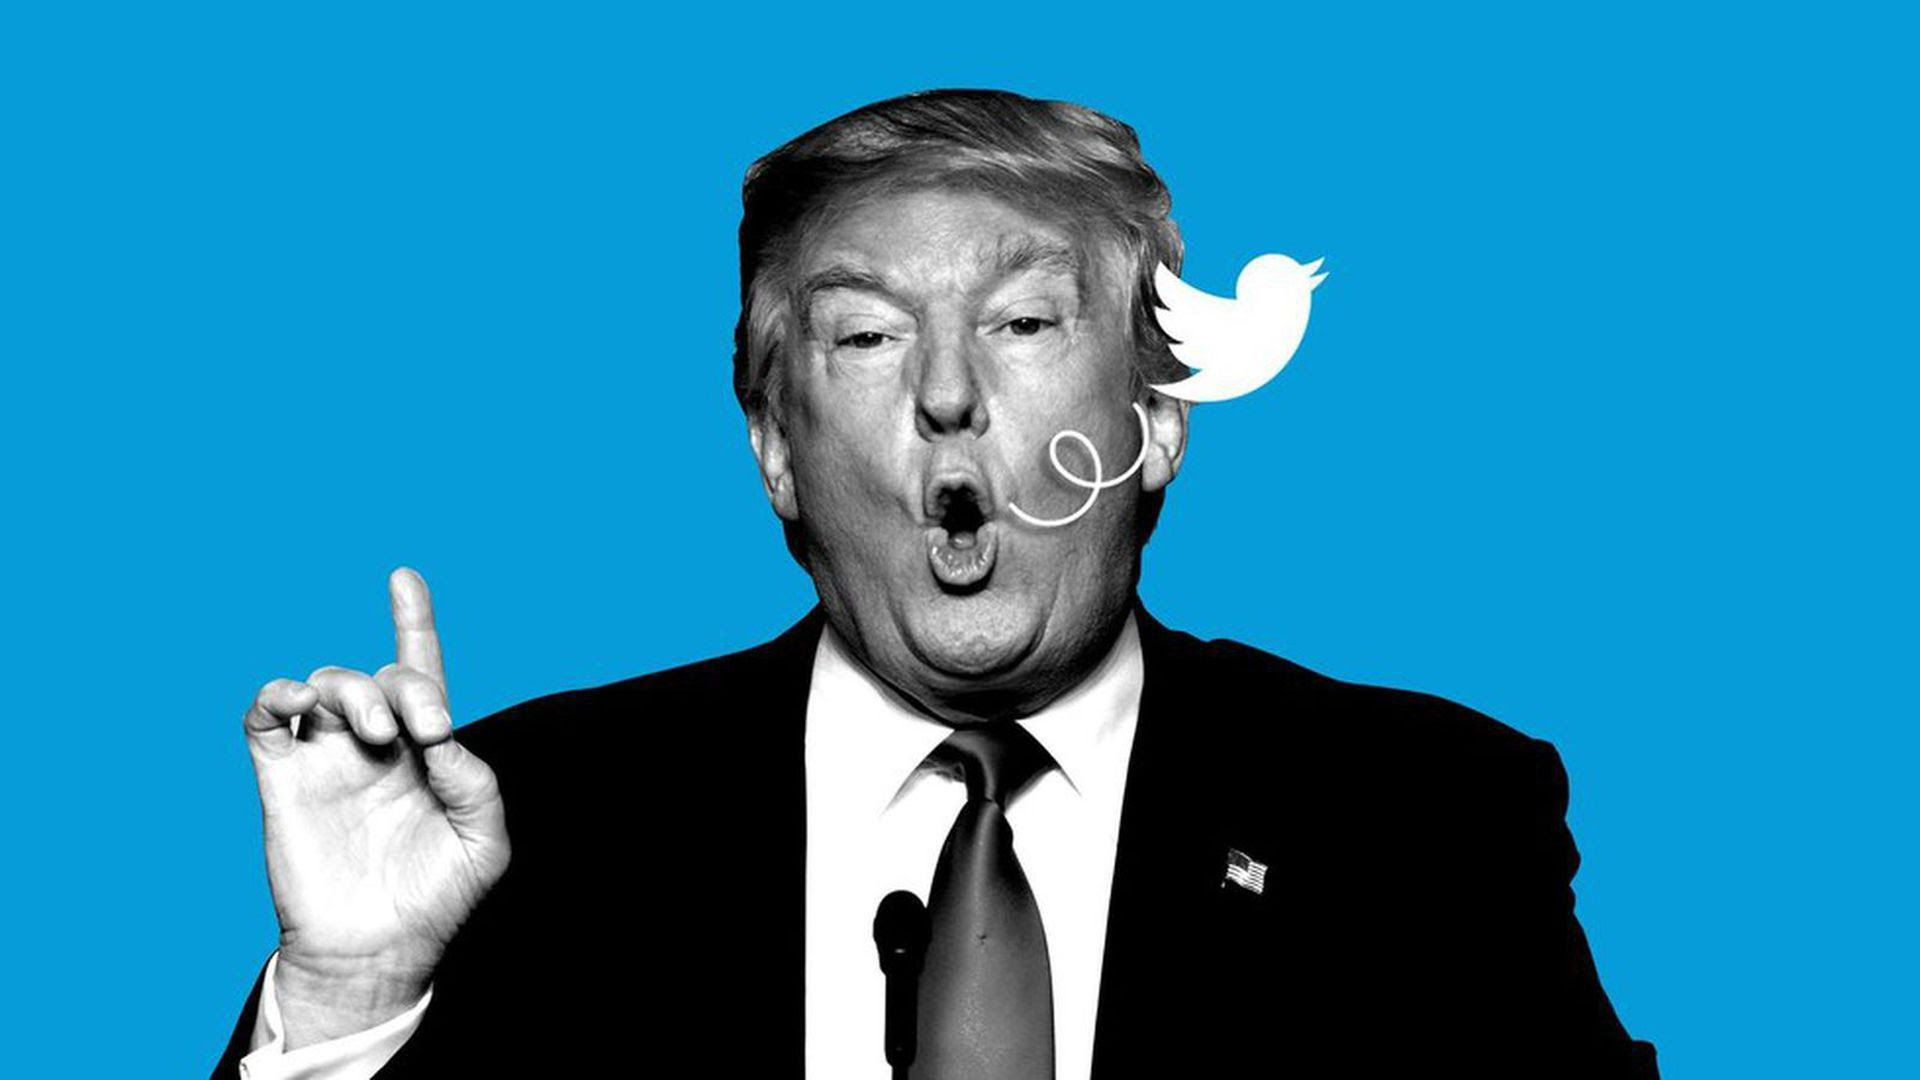 illustration of President Trump opening his mouth and the Twitter bird logo flies out